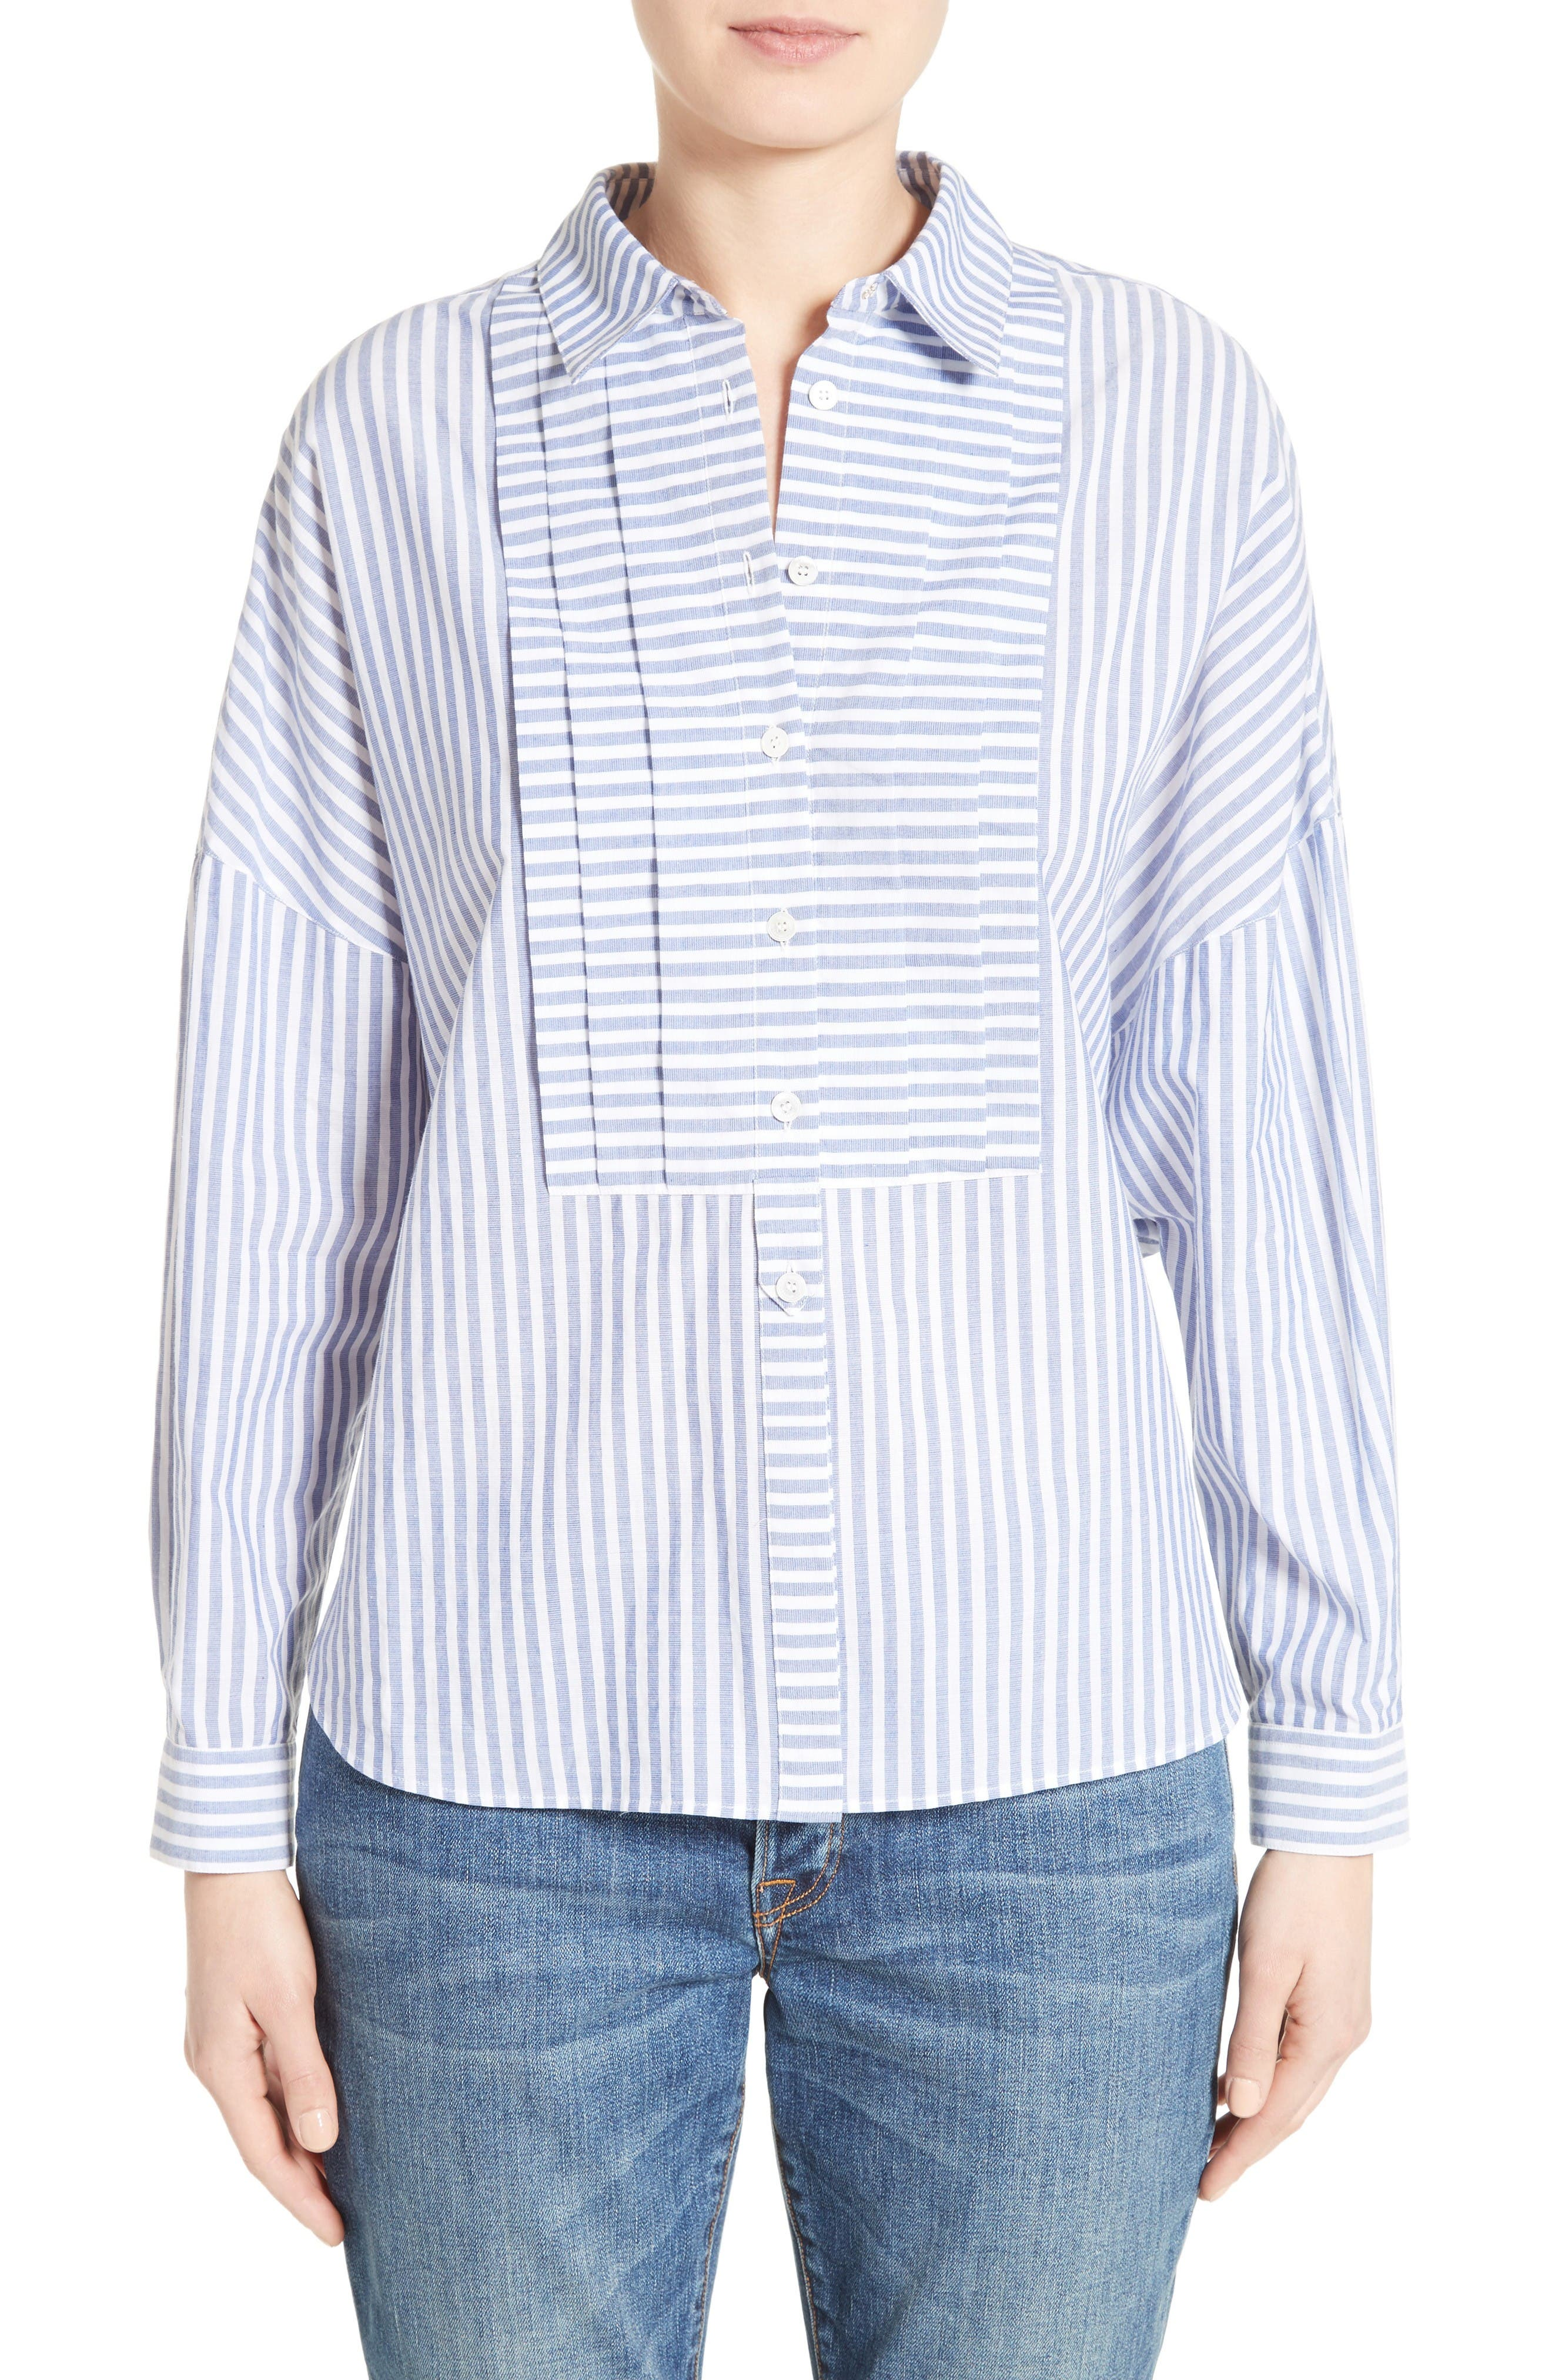 Posy Stripe Bib Boyfriend Shirt,                             Main thumbnail 1, color,                             Pale Blue/ White